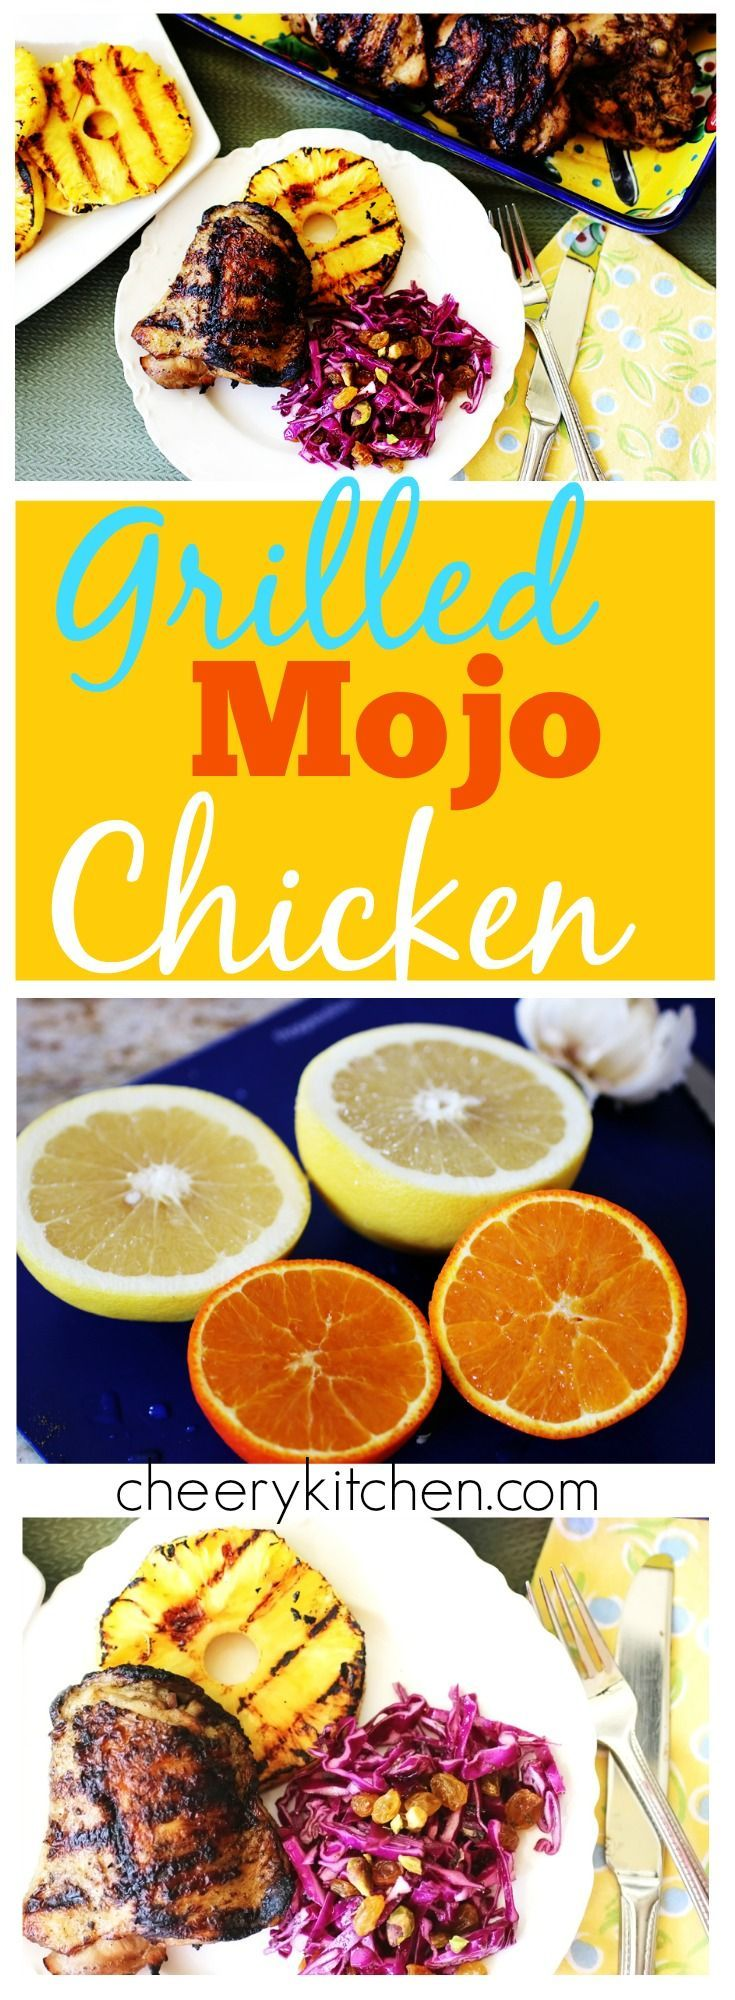 Grilled Mojo Chicken is easy and beyond delicious. Whirl the citrus marinade in your blender and pour over chicken. The next day grill and enjoy the tastiest chicken ever!